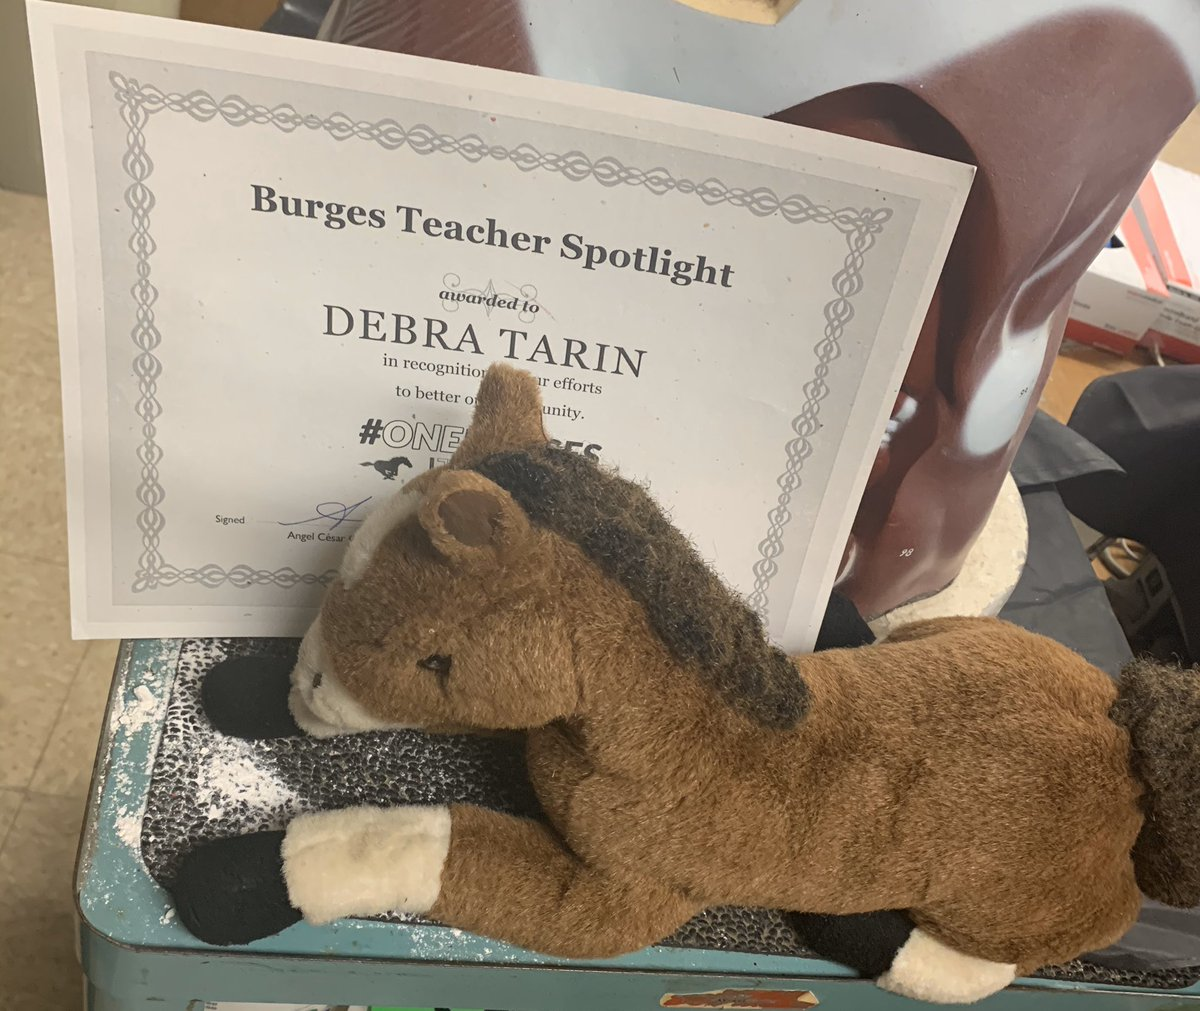 Mustang O'Malley from @BurgesMustang likes to hang out with the best teachers in town! Thanks Ms. Tarin for teaching our students about Forensics and A&P! @ELPASO_ISD @EarlyBECHS #ONEBURGES #HighSchoolTeam #ElPasoStrong